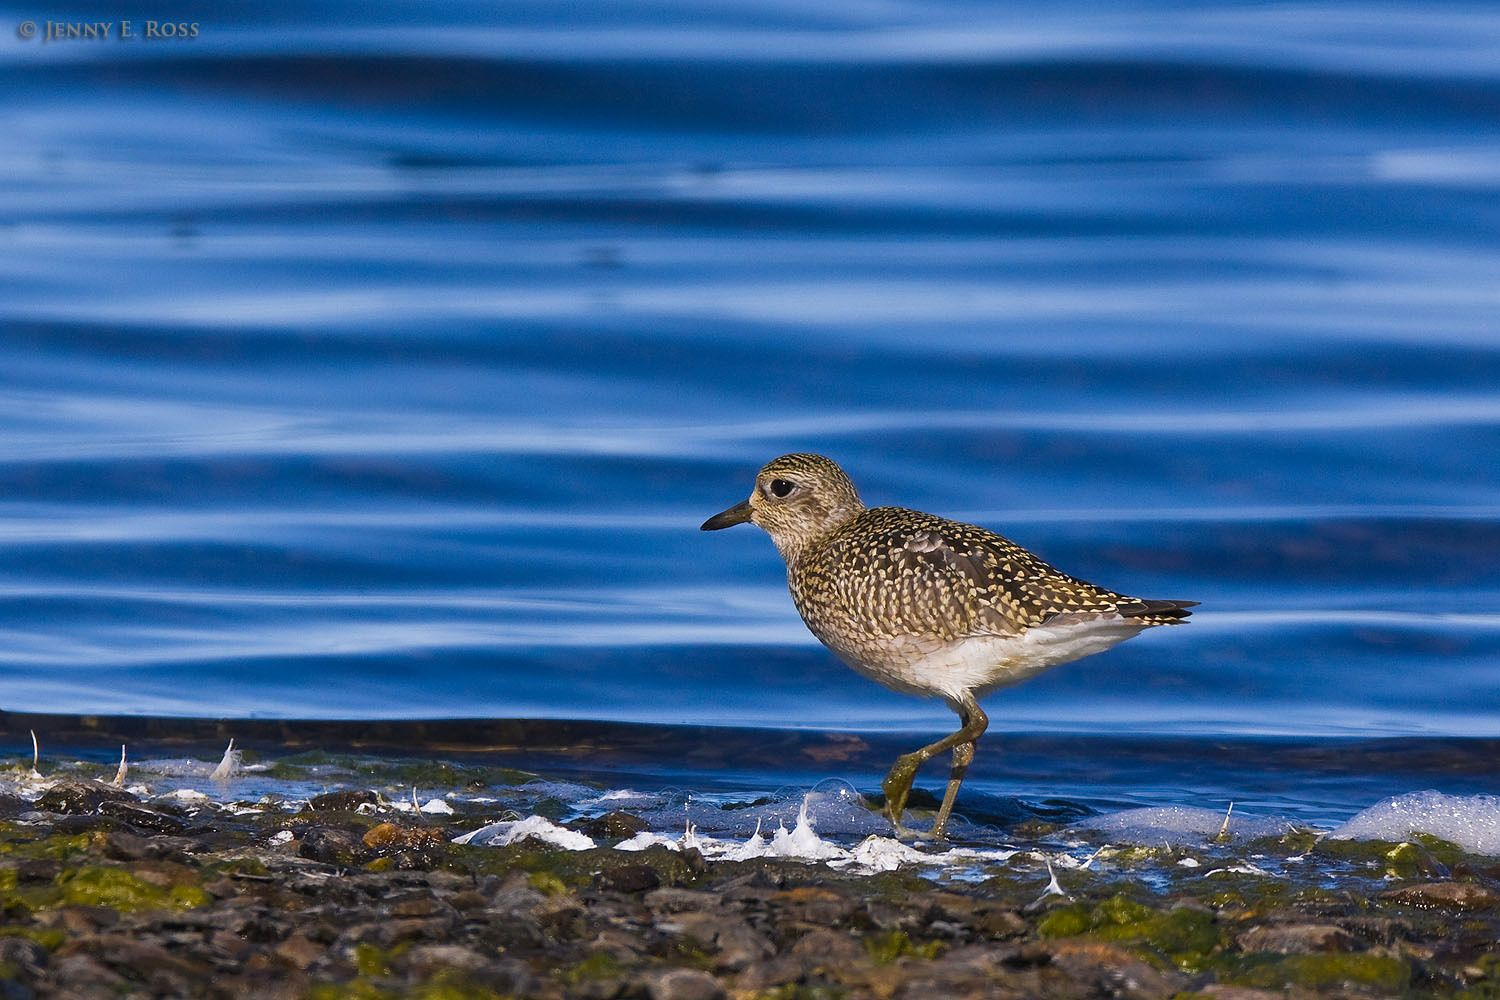 A black-bellied plover (Pluvialis squatarola, aka grey plover) foraging along the edge of a small lake on Wrangel Island in the East Siberian Sea (Arctic Ocean), Russia.